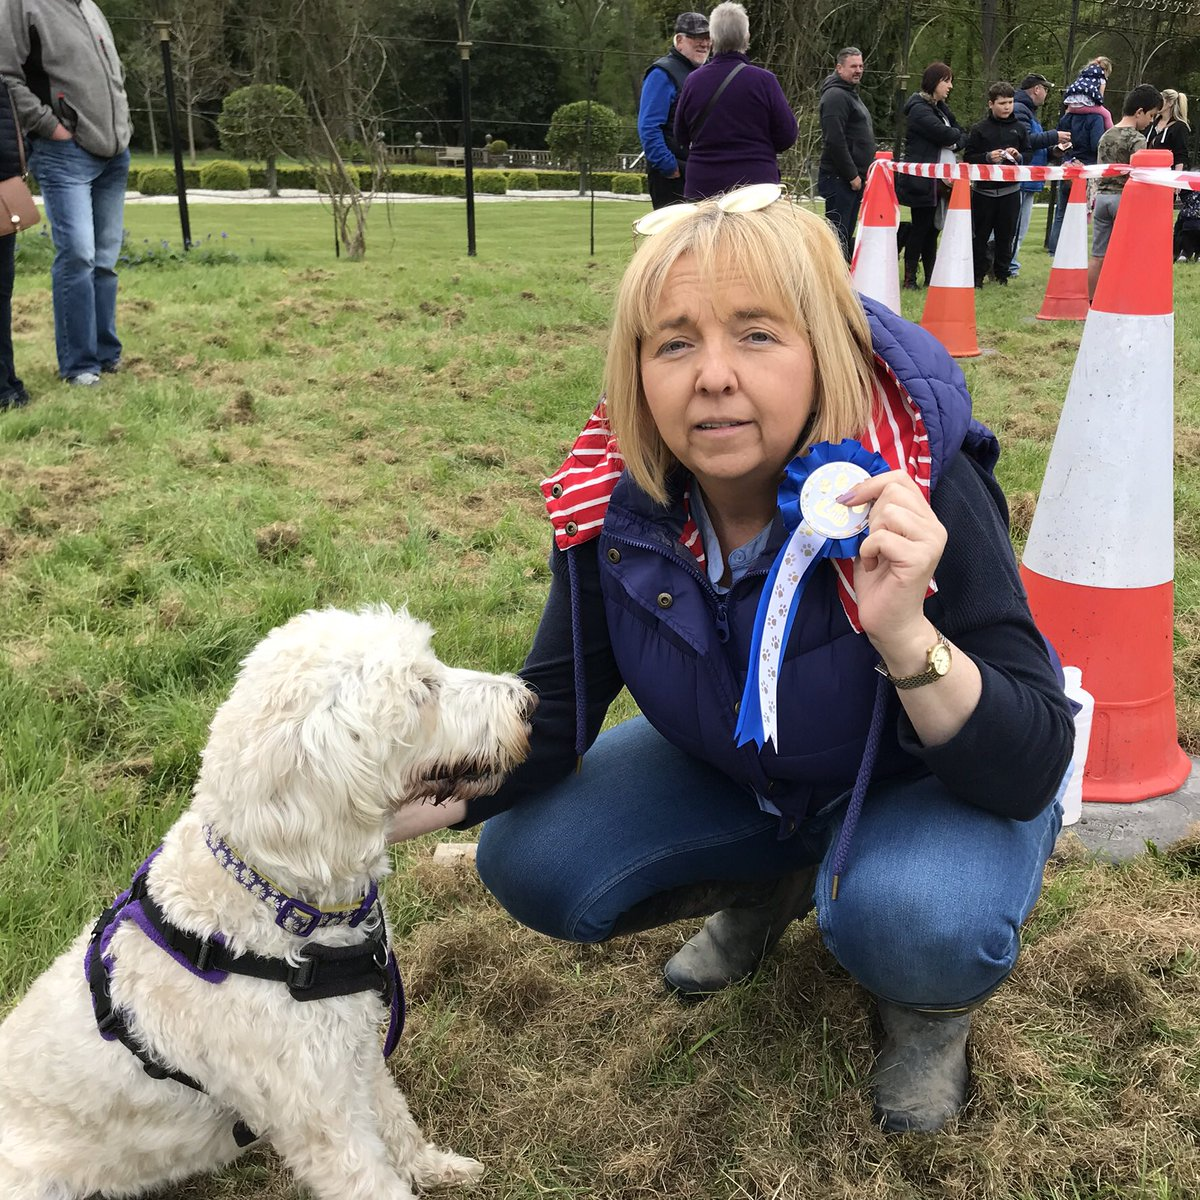 test Twitter Media - What a lovely day at the 'fun dog show' at Hogarths. Lovely atmosphere. Daisy was so good and even won a rosette for 2nd place in the 'tricks' category.🐾🐾🐾 https://t.co/7AsLuoBA1o